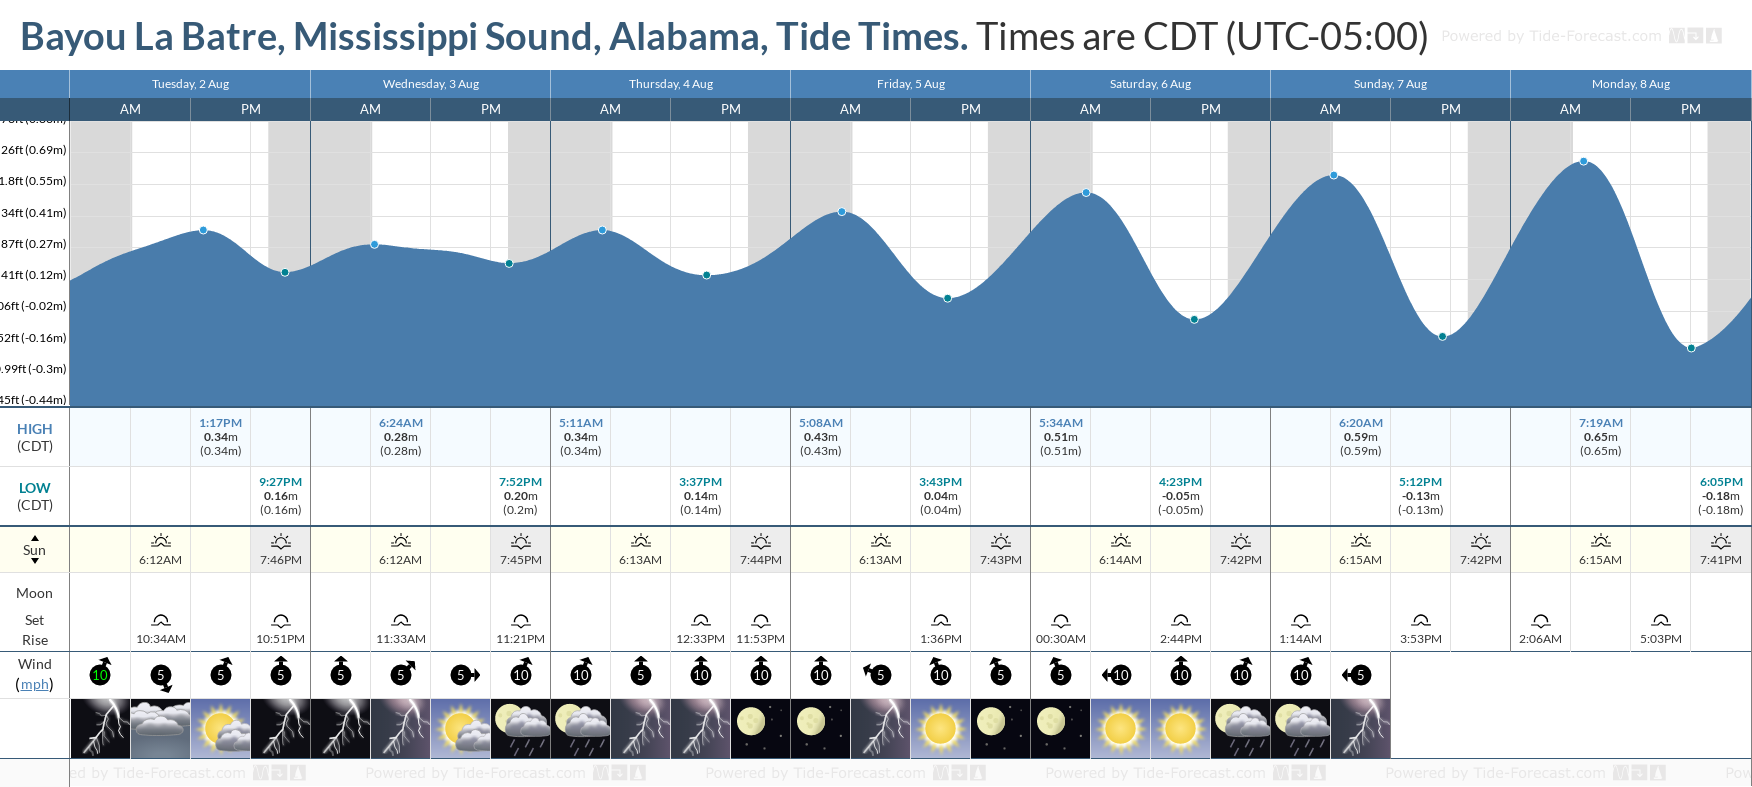 Bayou La Batre, Mississippi Sound, Alabama Tide Chart including high and low tide tide times for the next 7 days